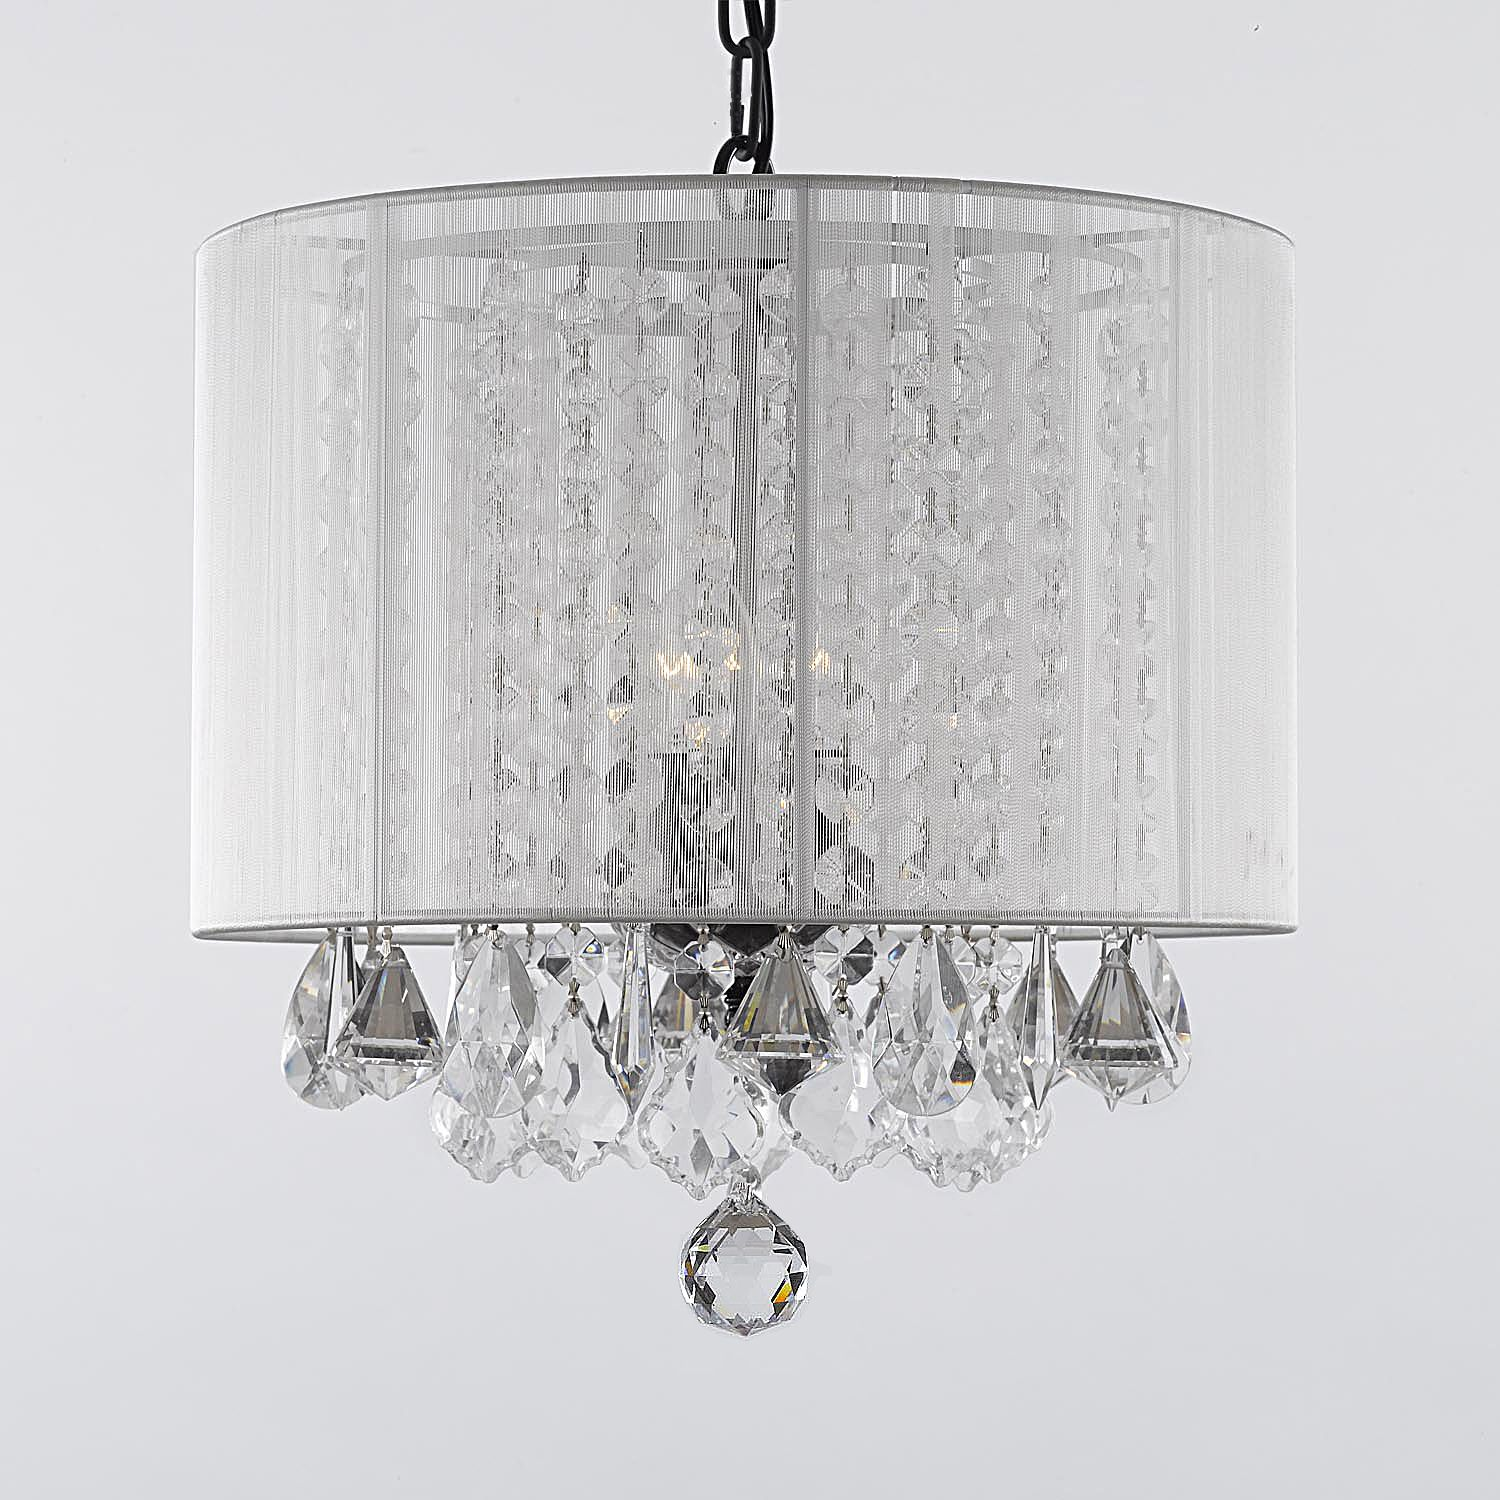 Chandelier With Shade Chandeliers Design – White Chandelier with Shades